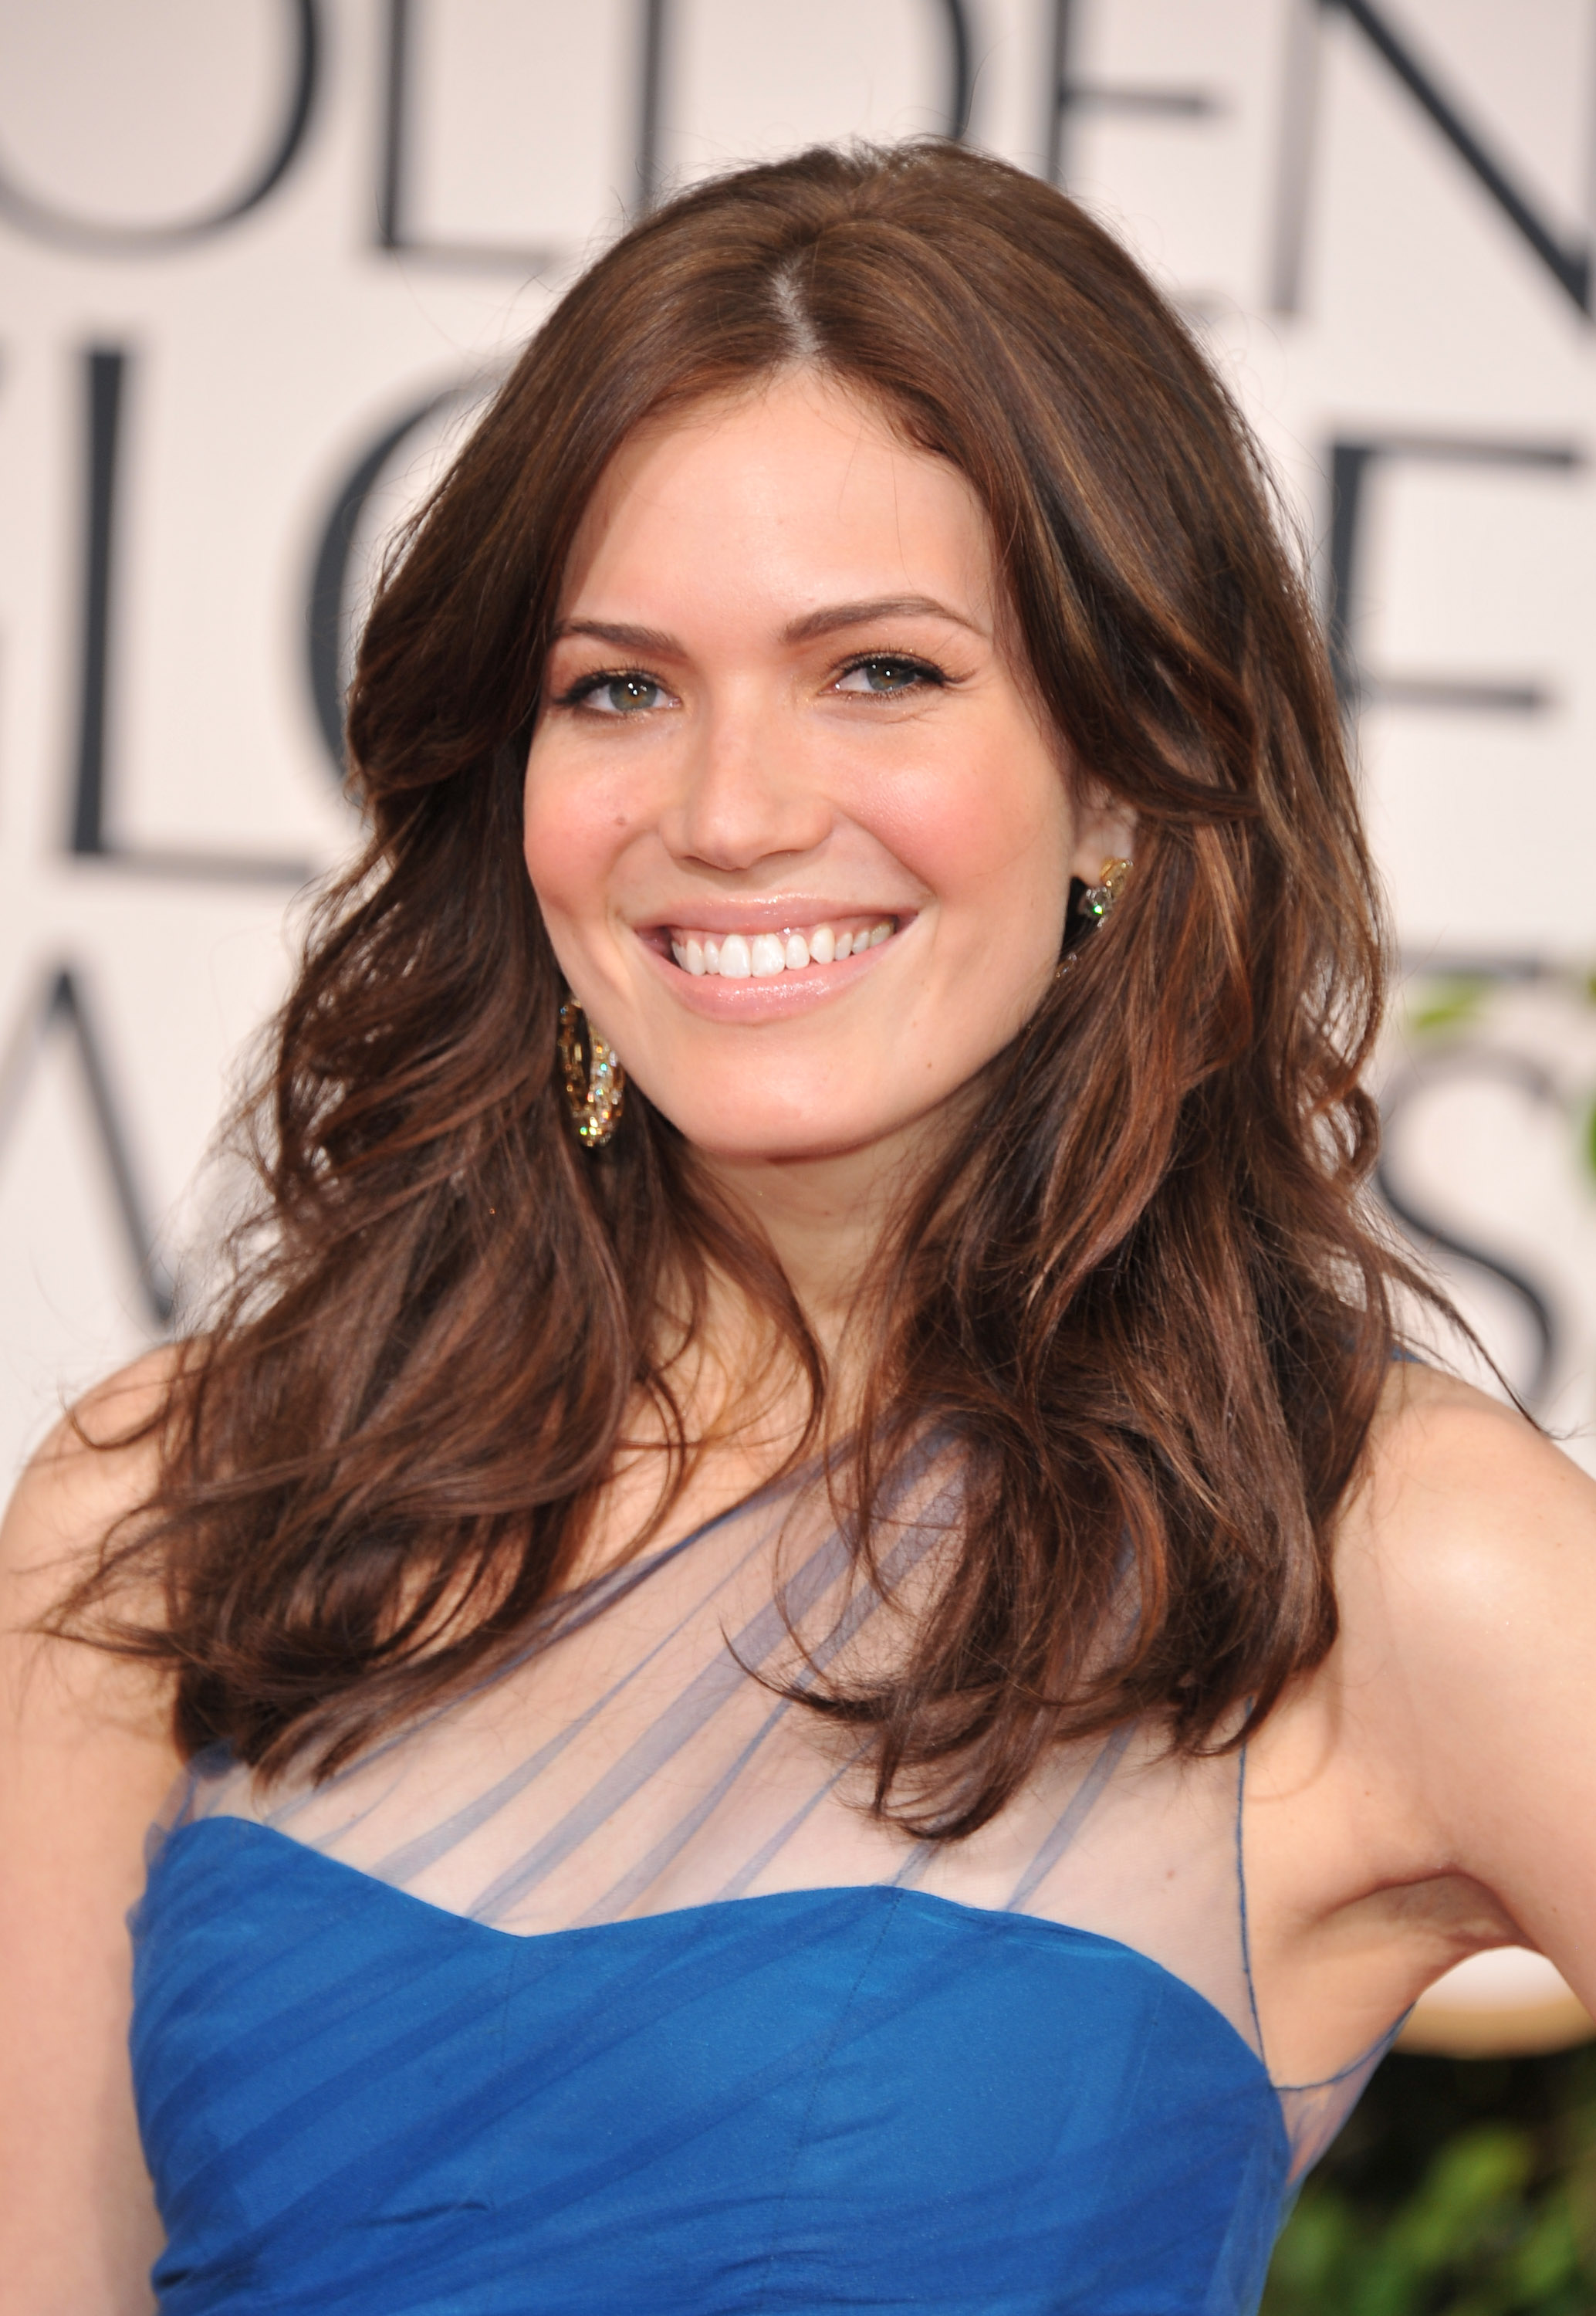 Tips: Mandy Moore 2018 chic peinado de actriz interesante